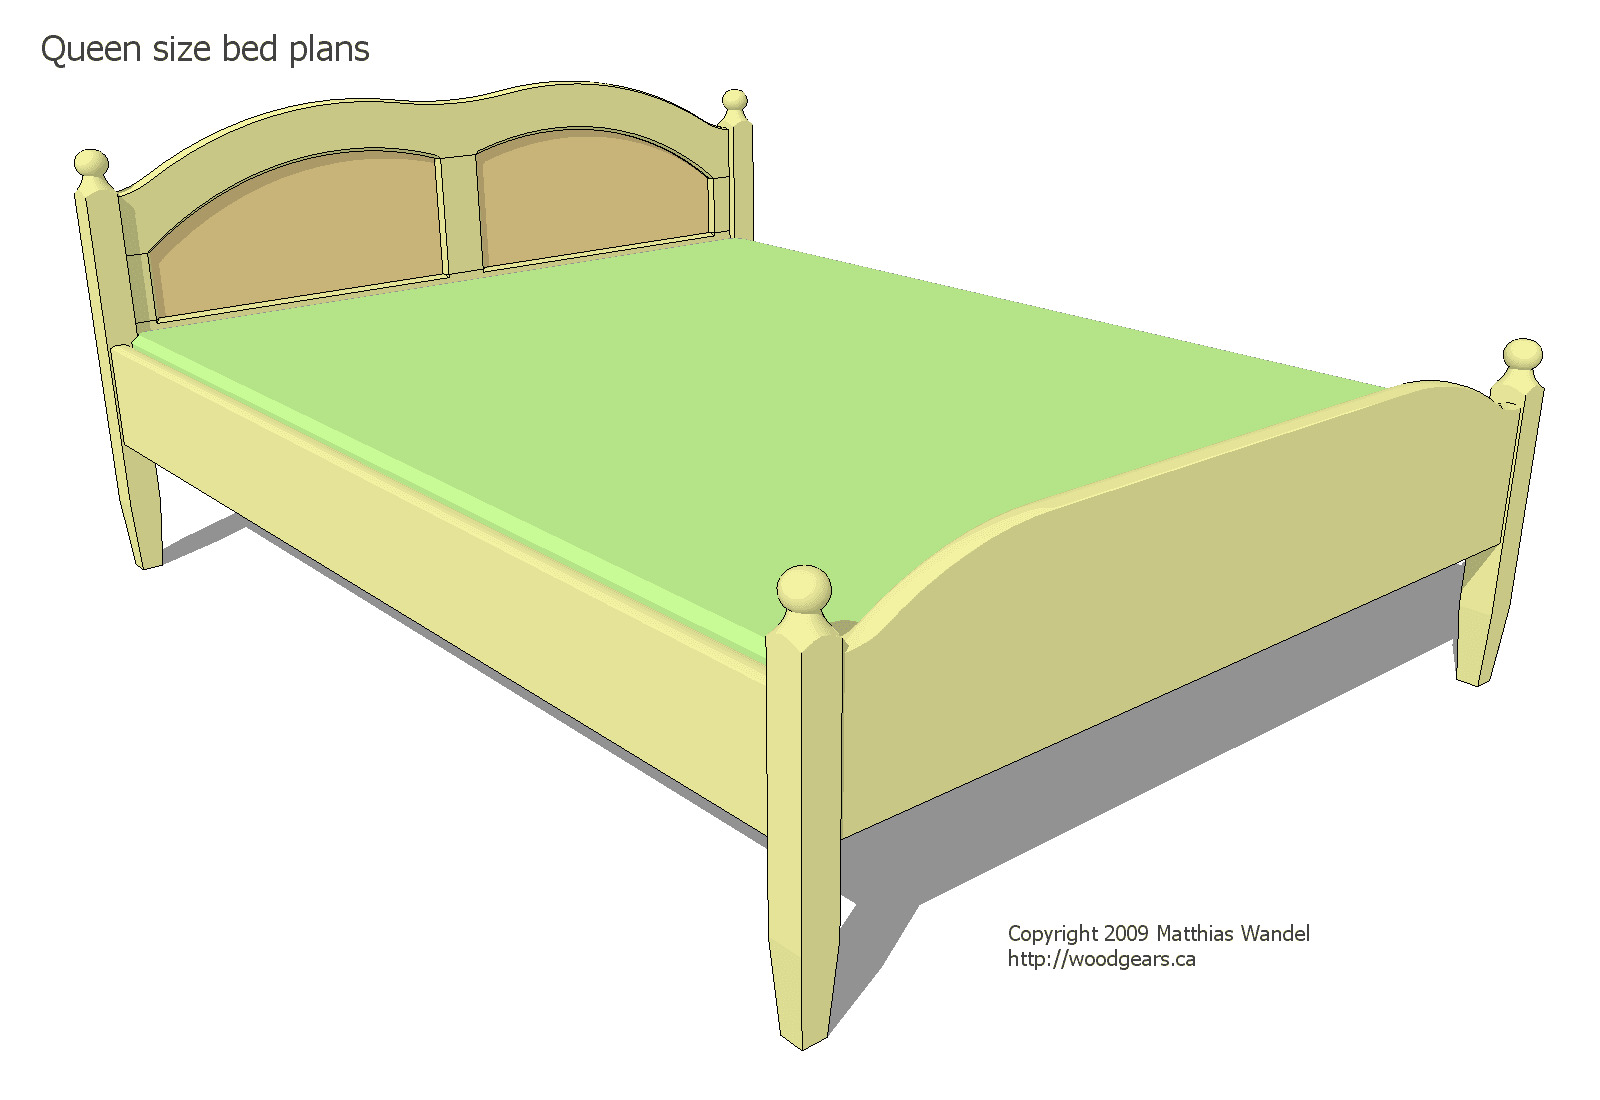 15 free diy bed plans for adults and children - Wooden Bed Frame Plans